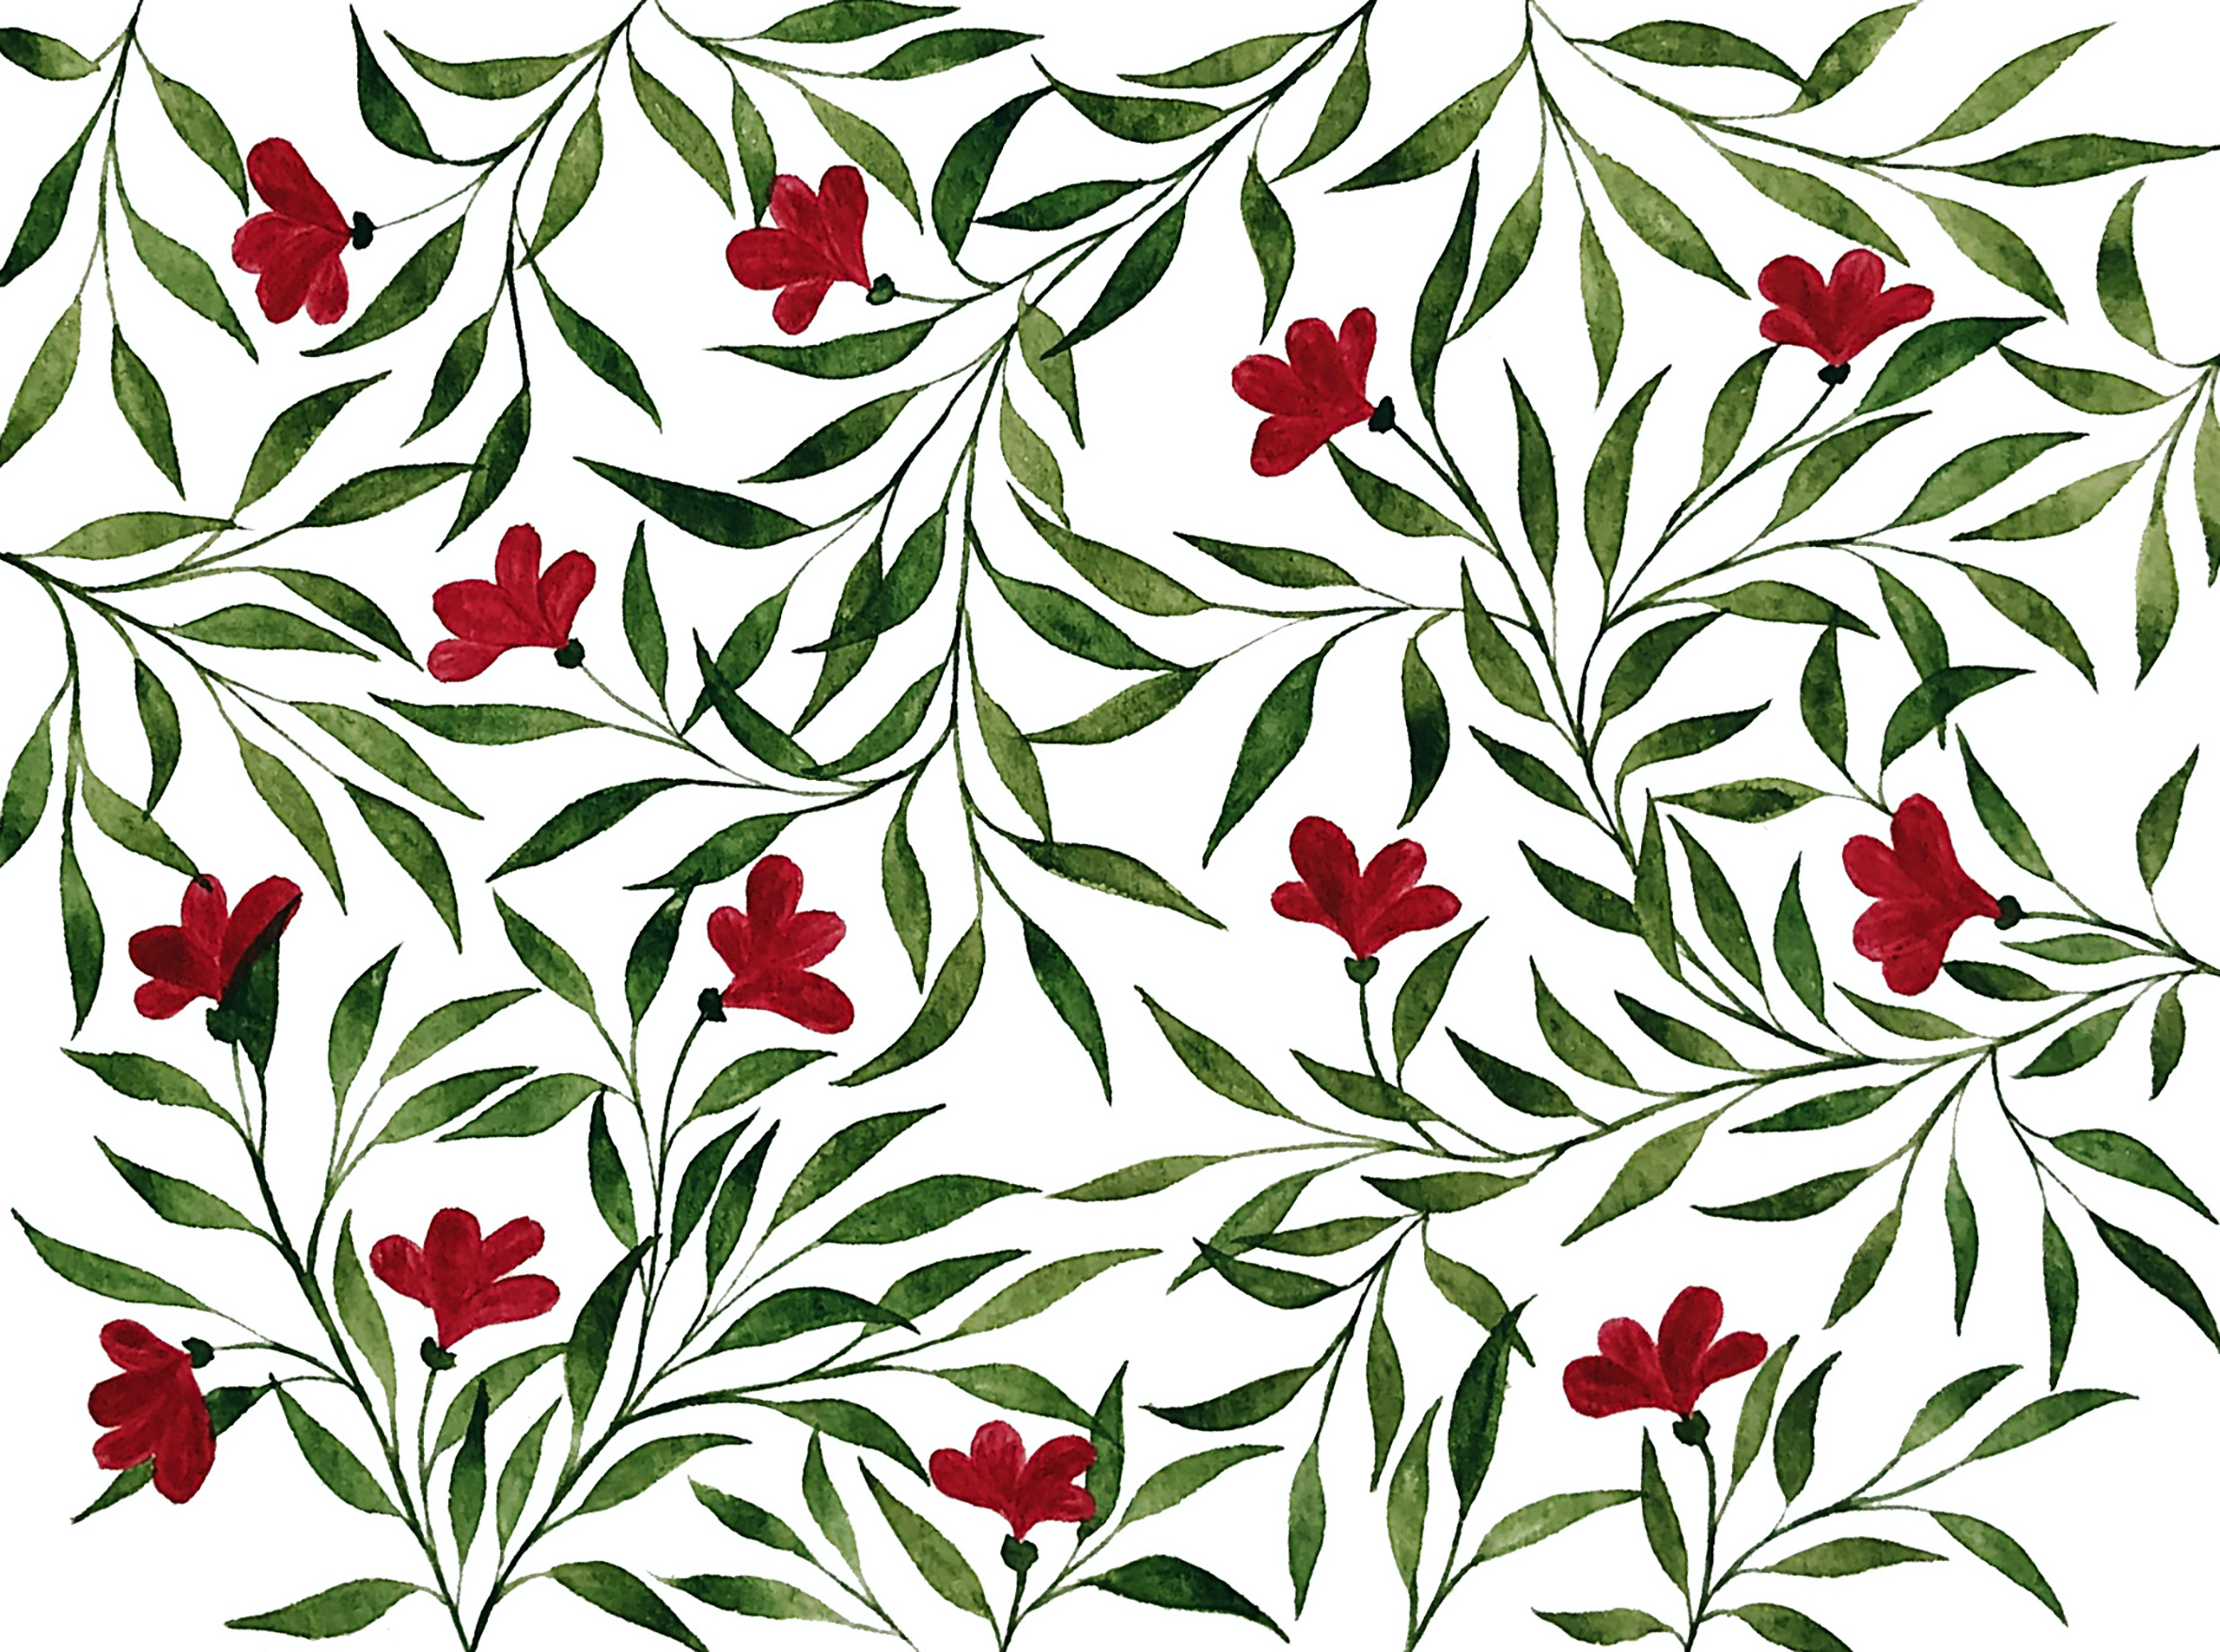 claudiaiarca_watercolorflowers_pattern